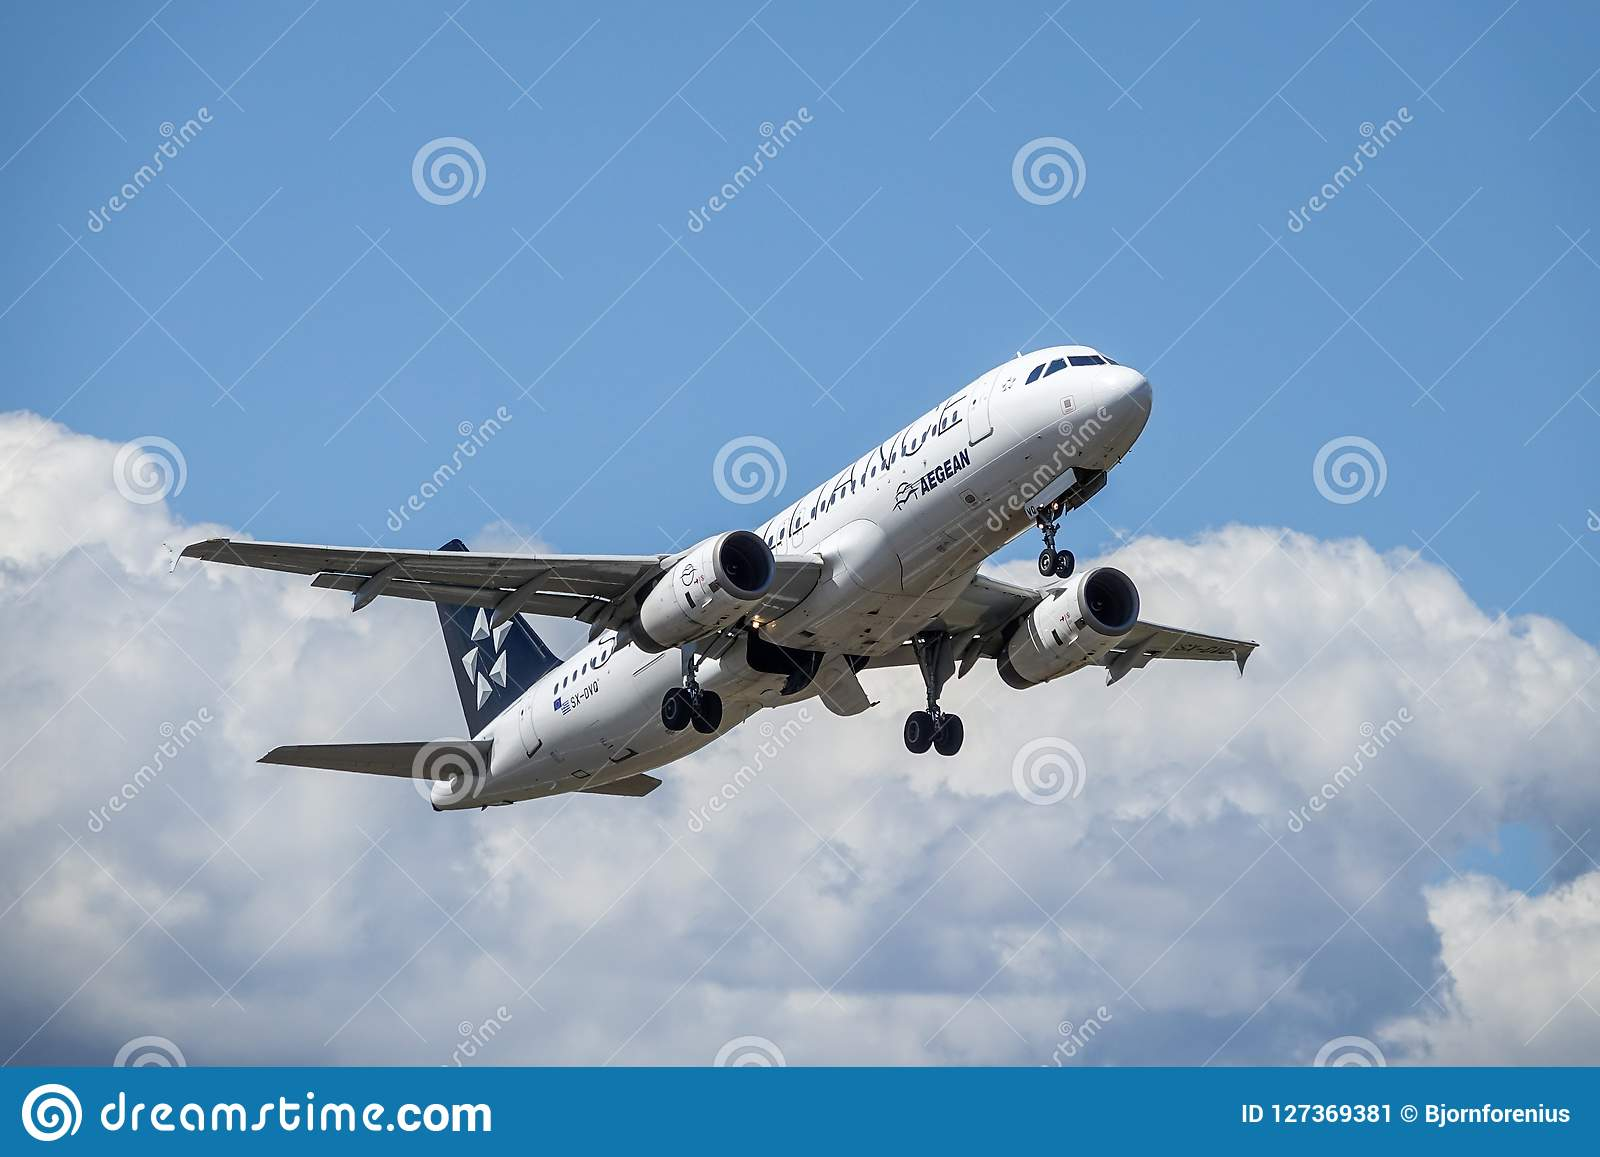 Aegean Airlines, Star Alliance, Airbus A320 - 200 take off